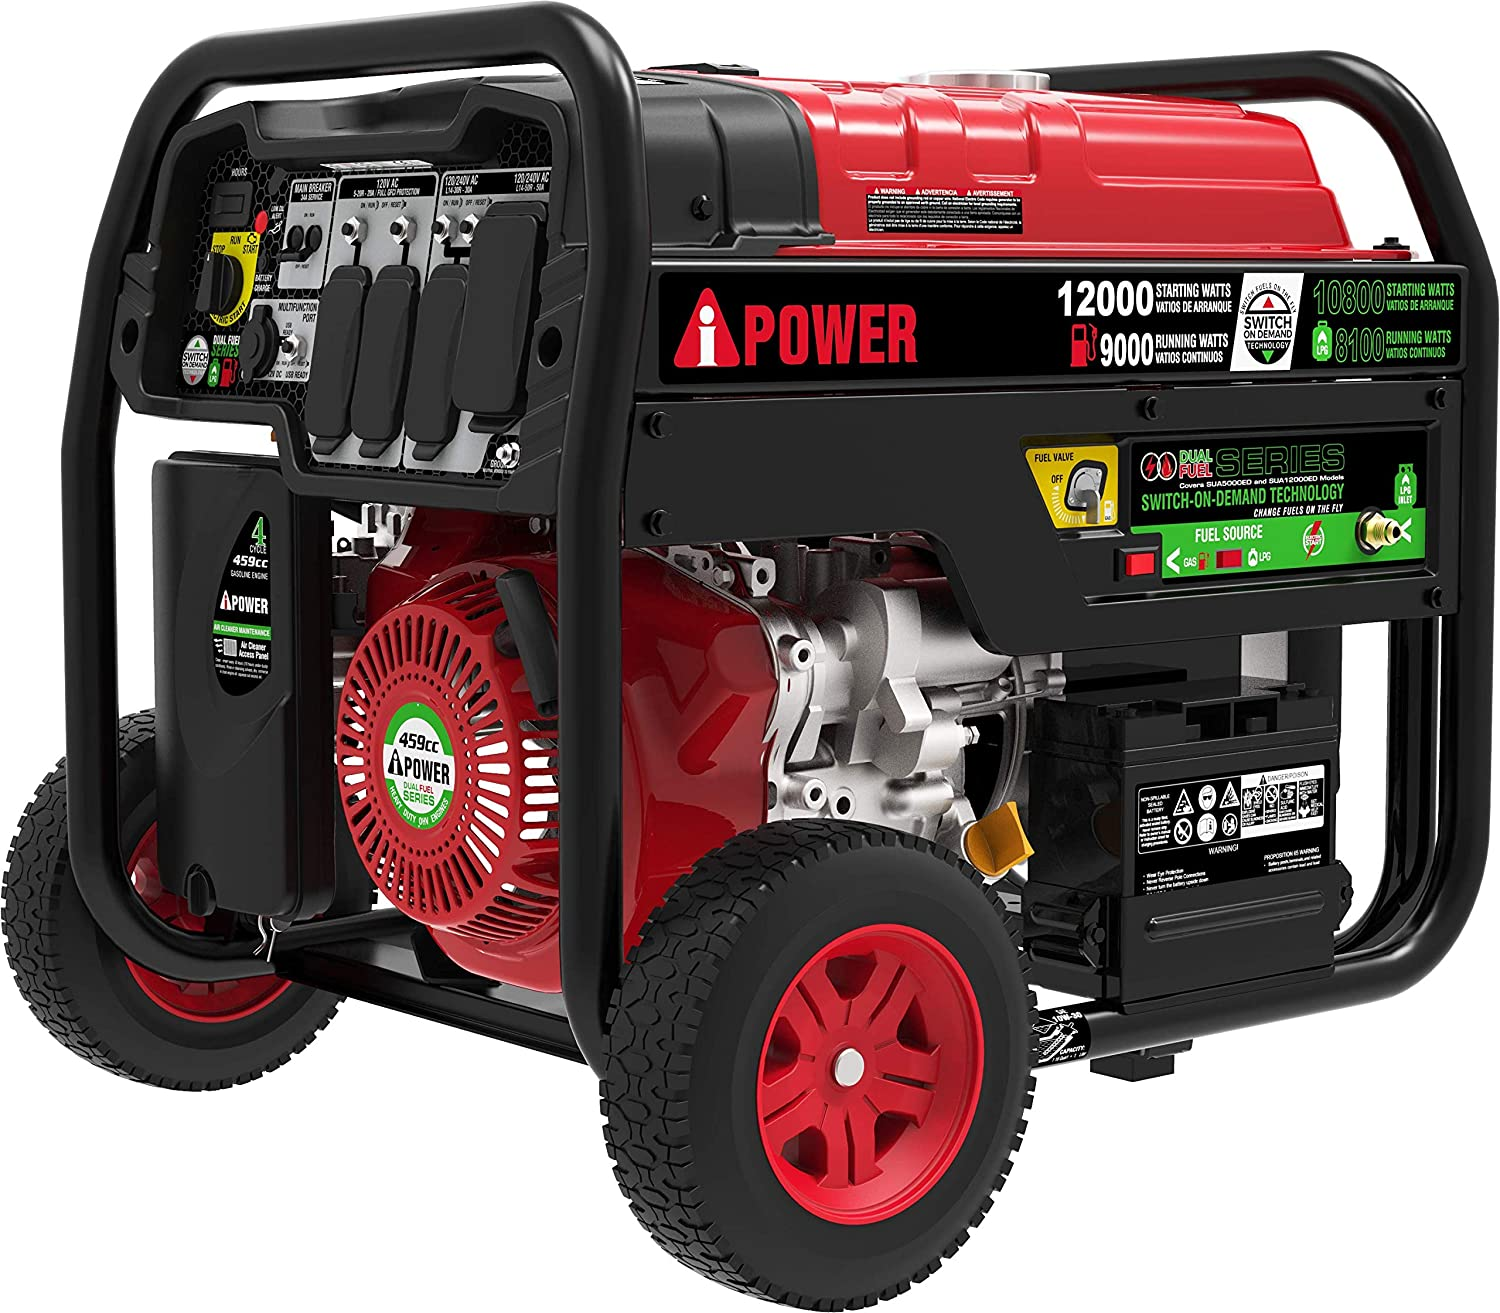 A-ipower Generator Reviews In 2021 - Top 3 Picks! 1